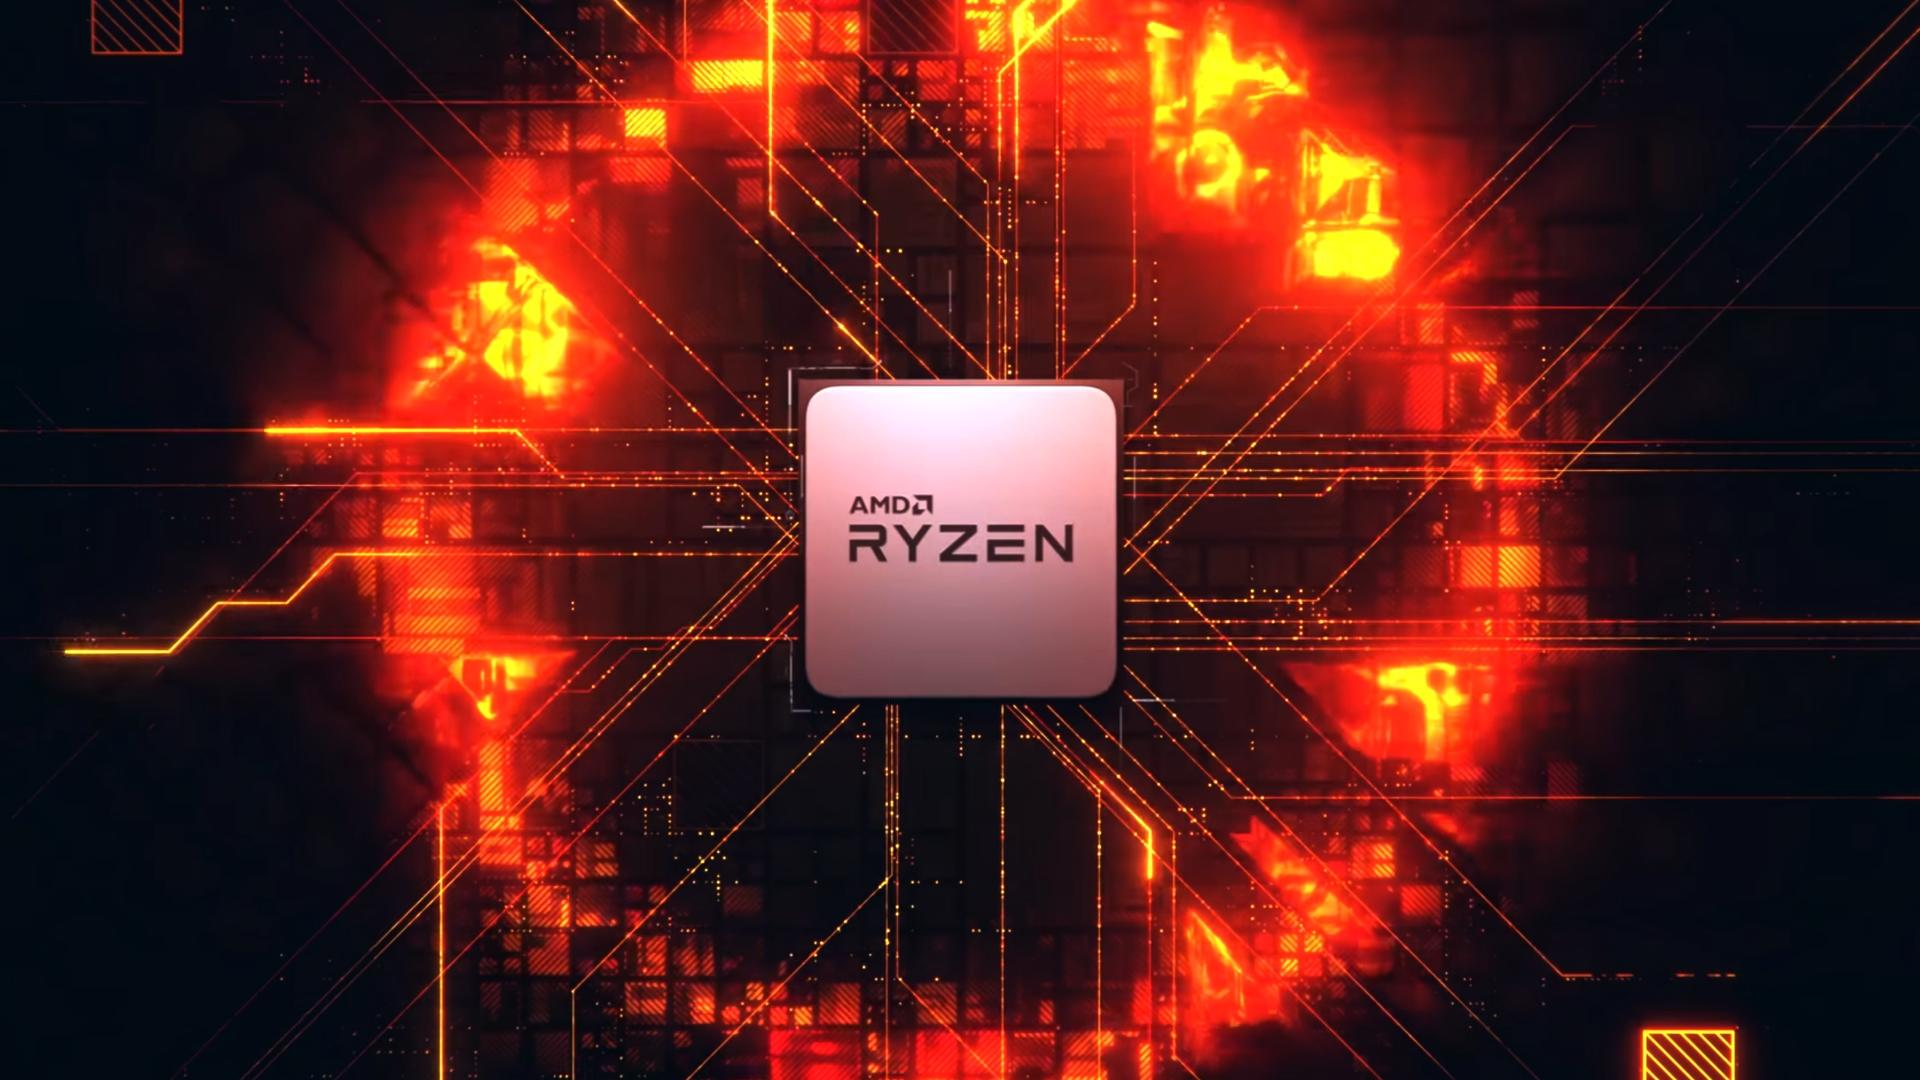 AMD Ryzen Wallpapers - Wallpaper Cave